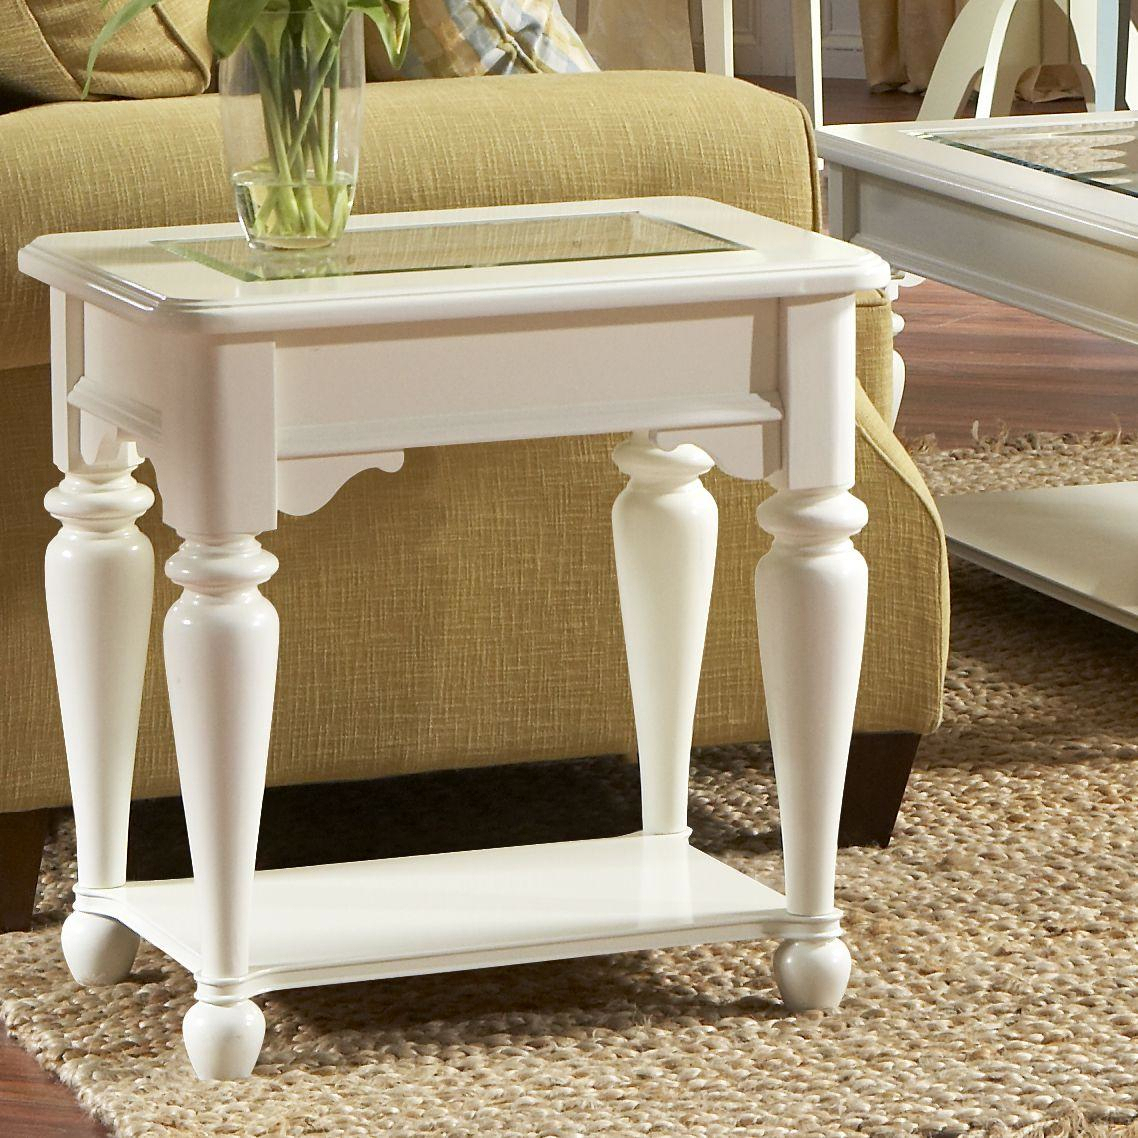 cheap white wooden living room side tables with glass on top